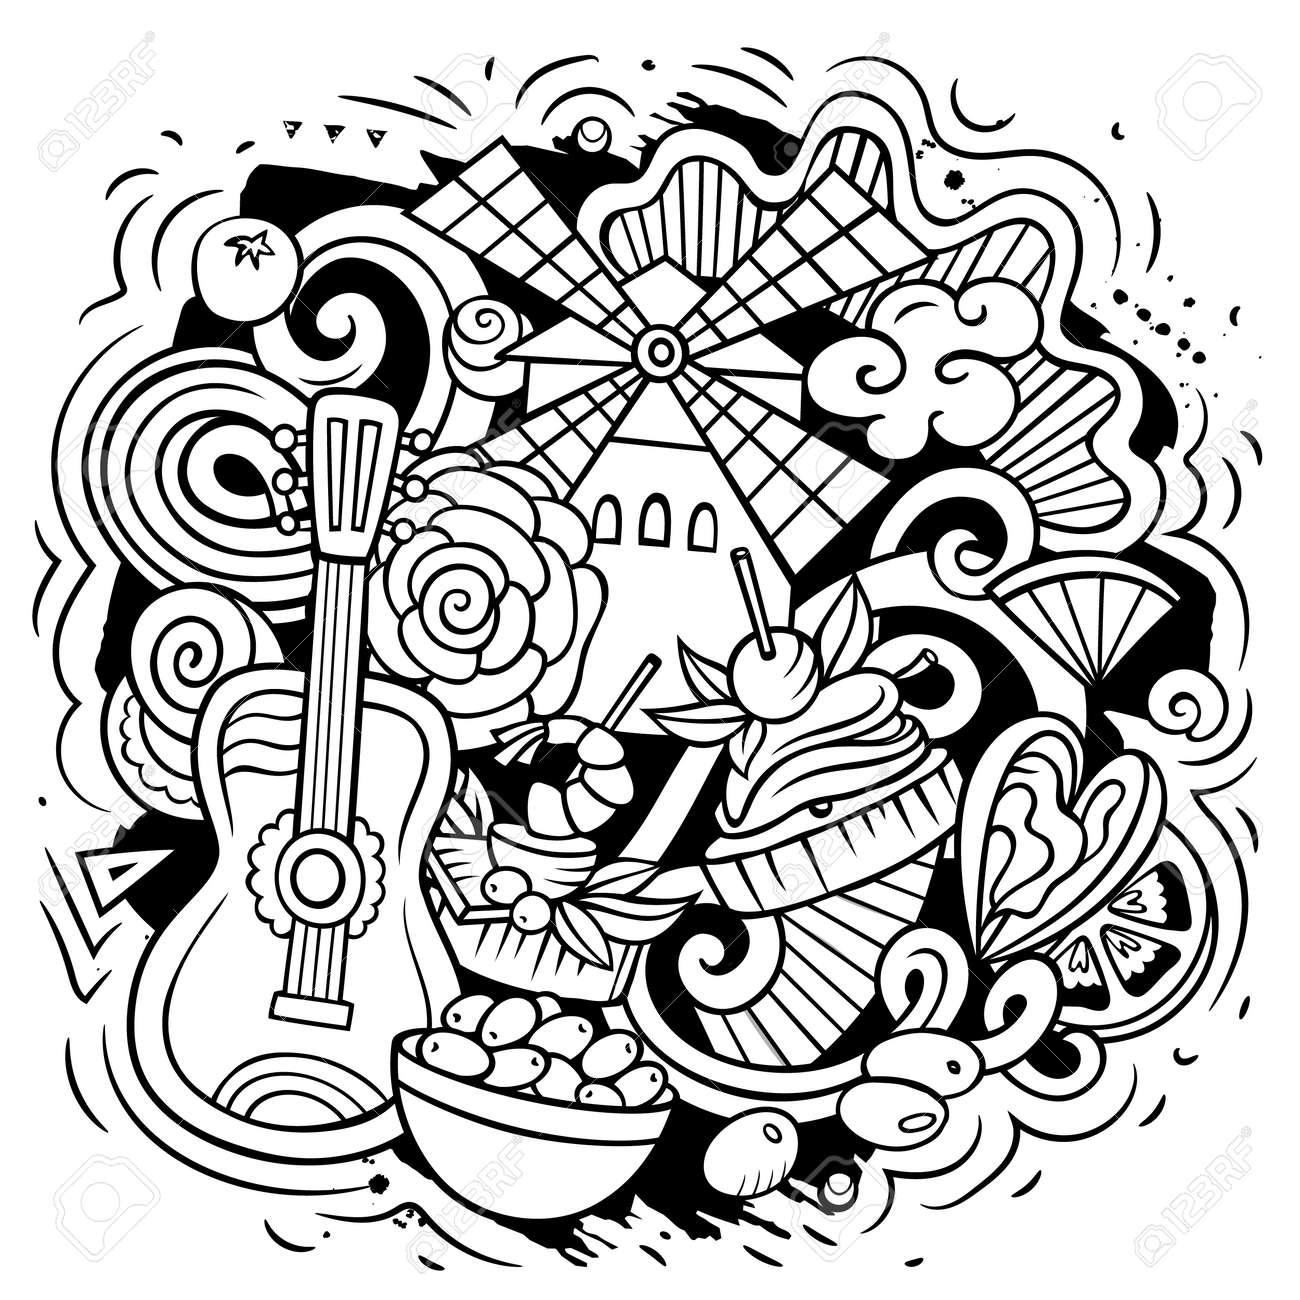 Spain hand drawn cartoon doodle illustration. Funny Spanish elements and objects design. Creative art vector background - 170554950